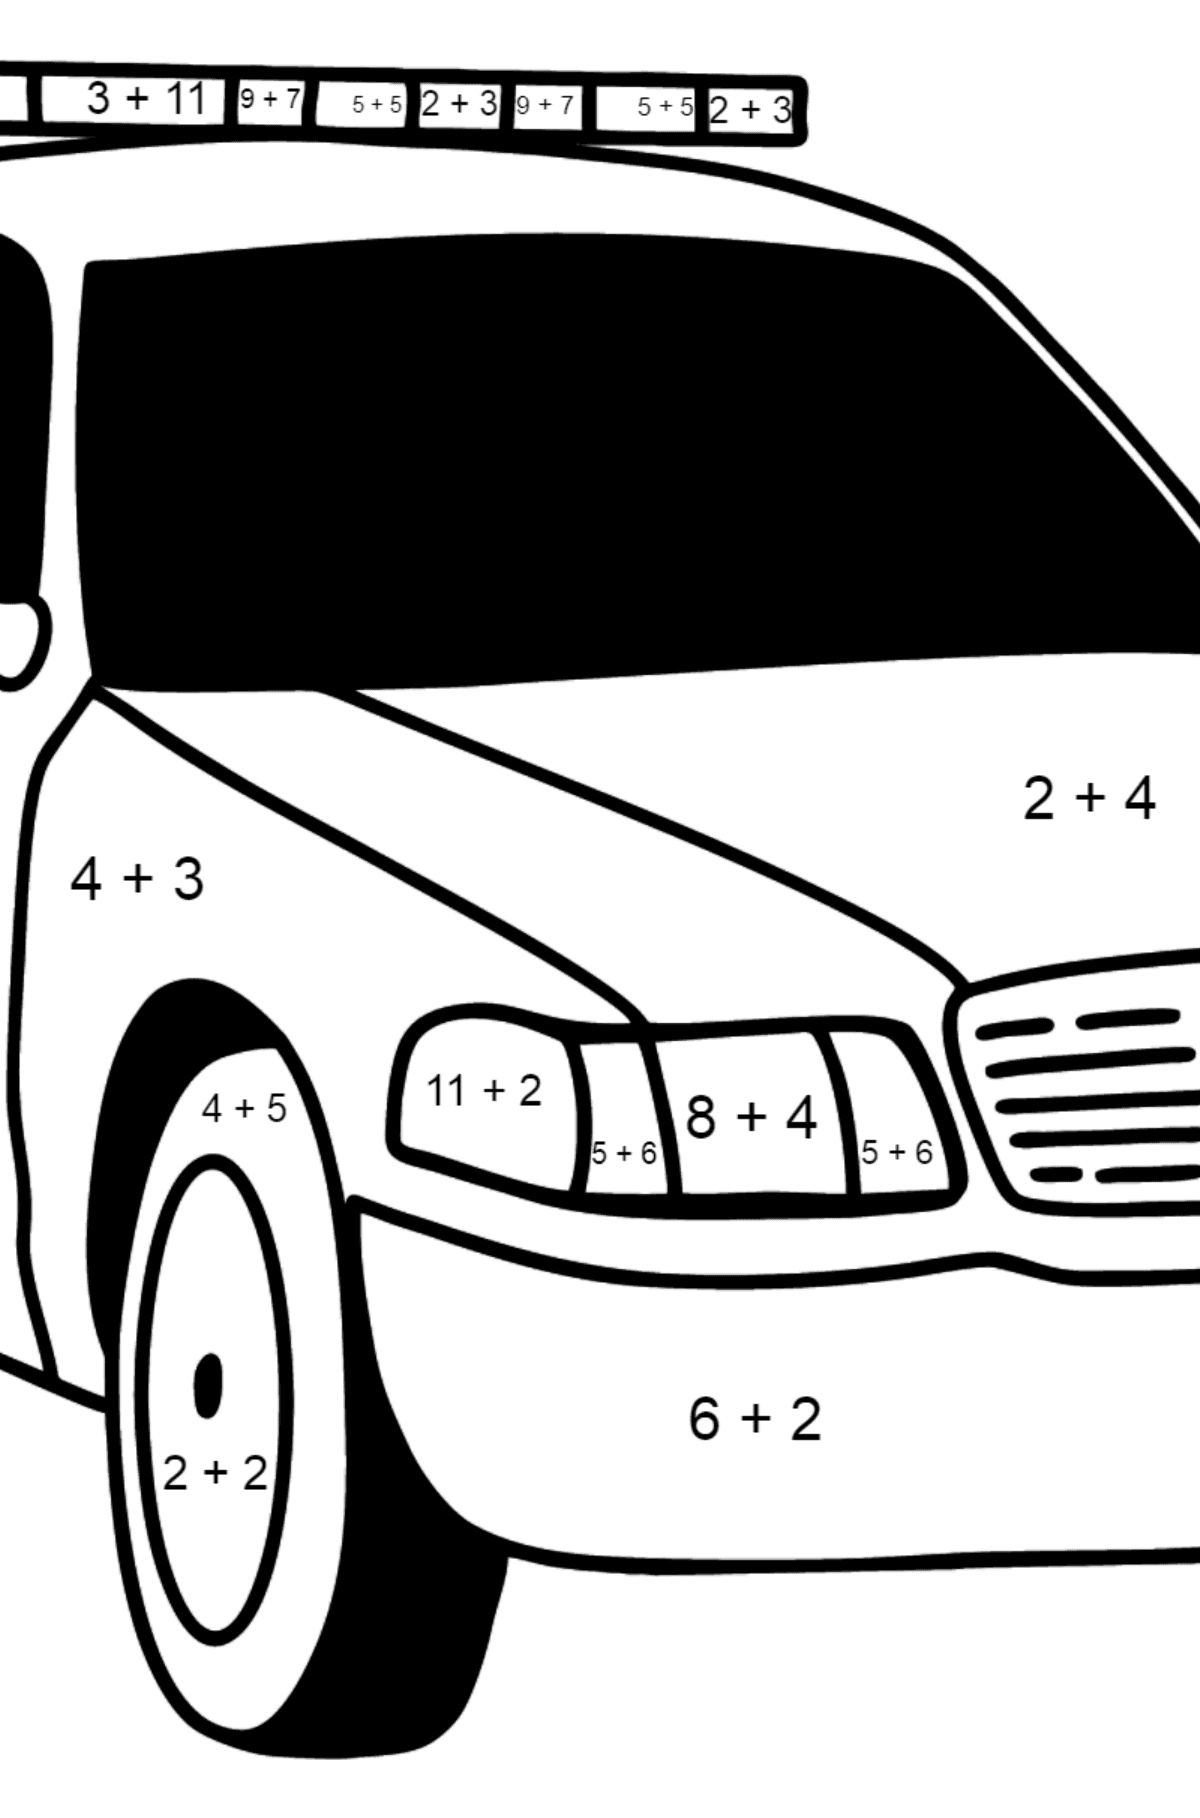 US Police Car coloring page - Math Coloring - Addition for Kids